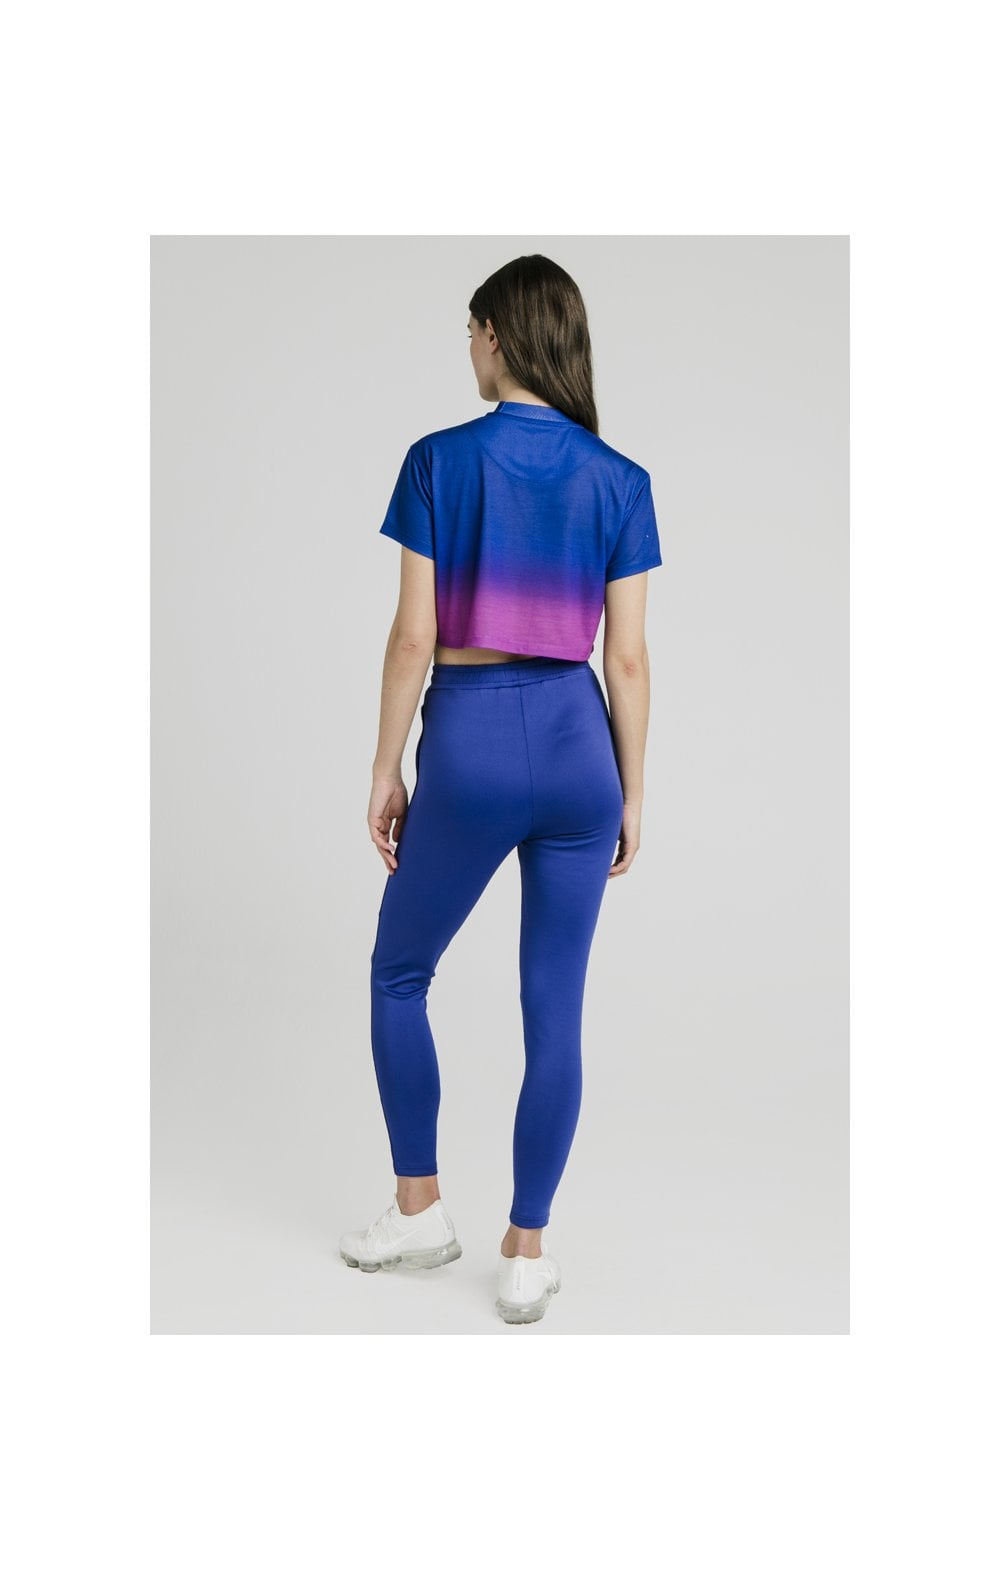 Load image into Gallery viewer, SikSilk Fade Crop Tee – Blue & Rose (4)